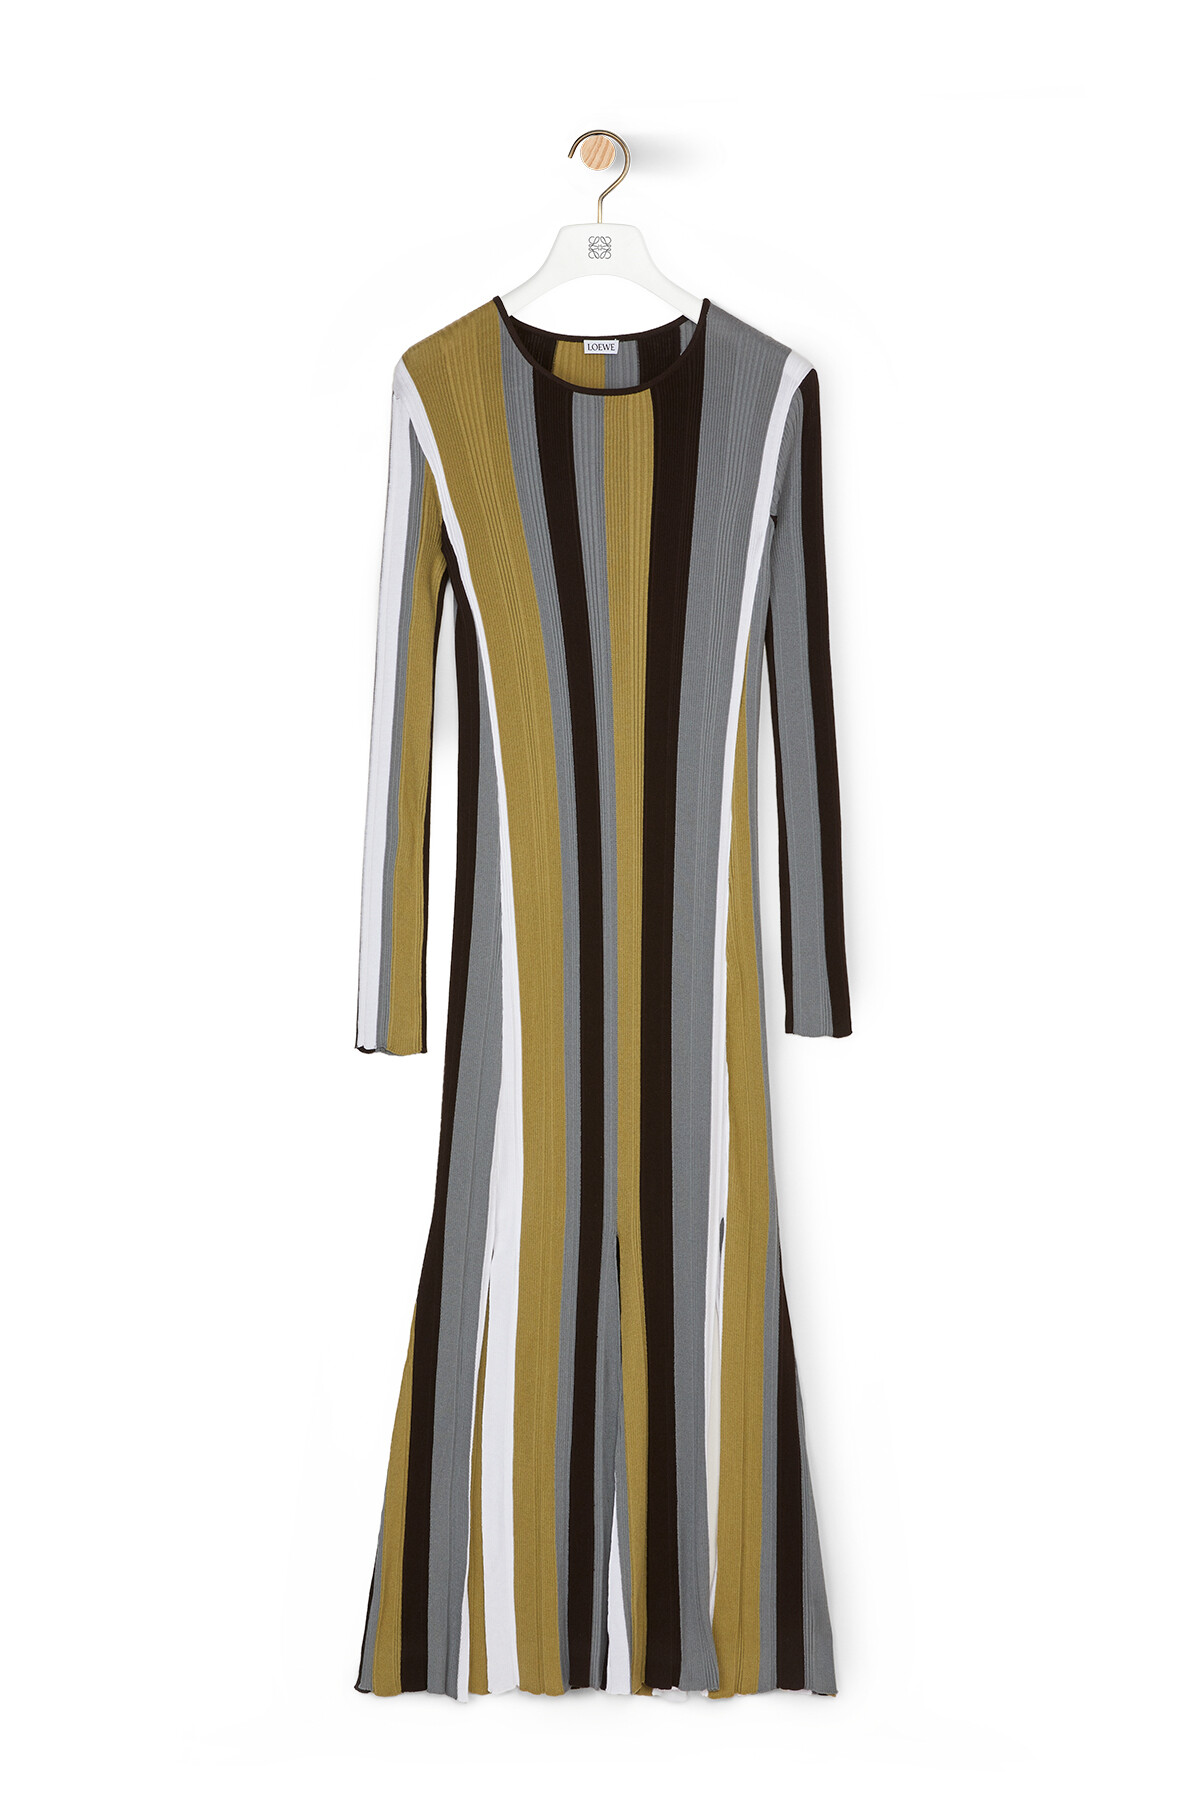 LOEWE Ribbed Stripe Knit Dress Brown/White front